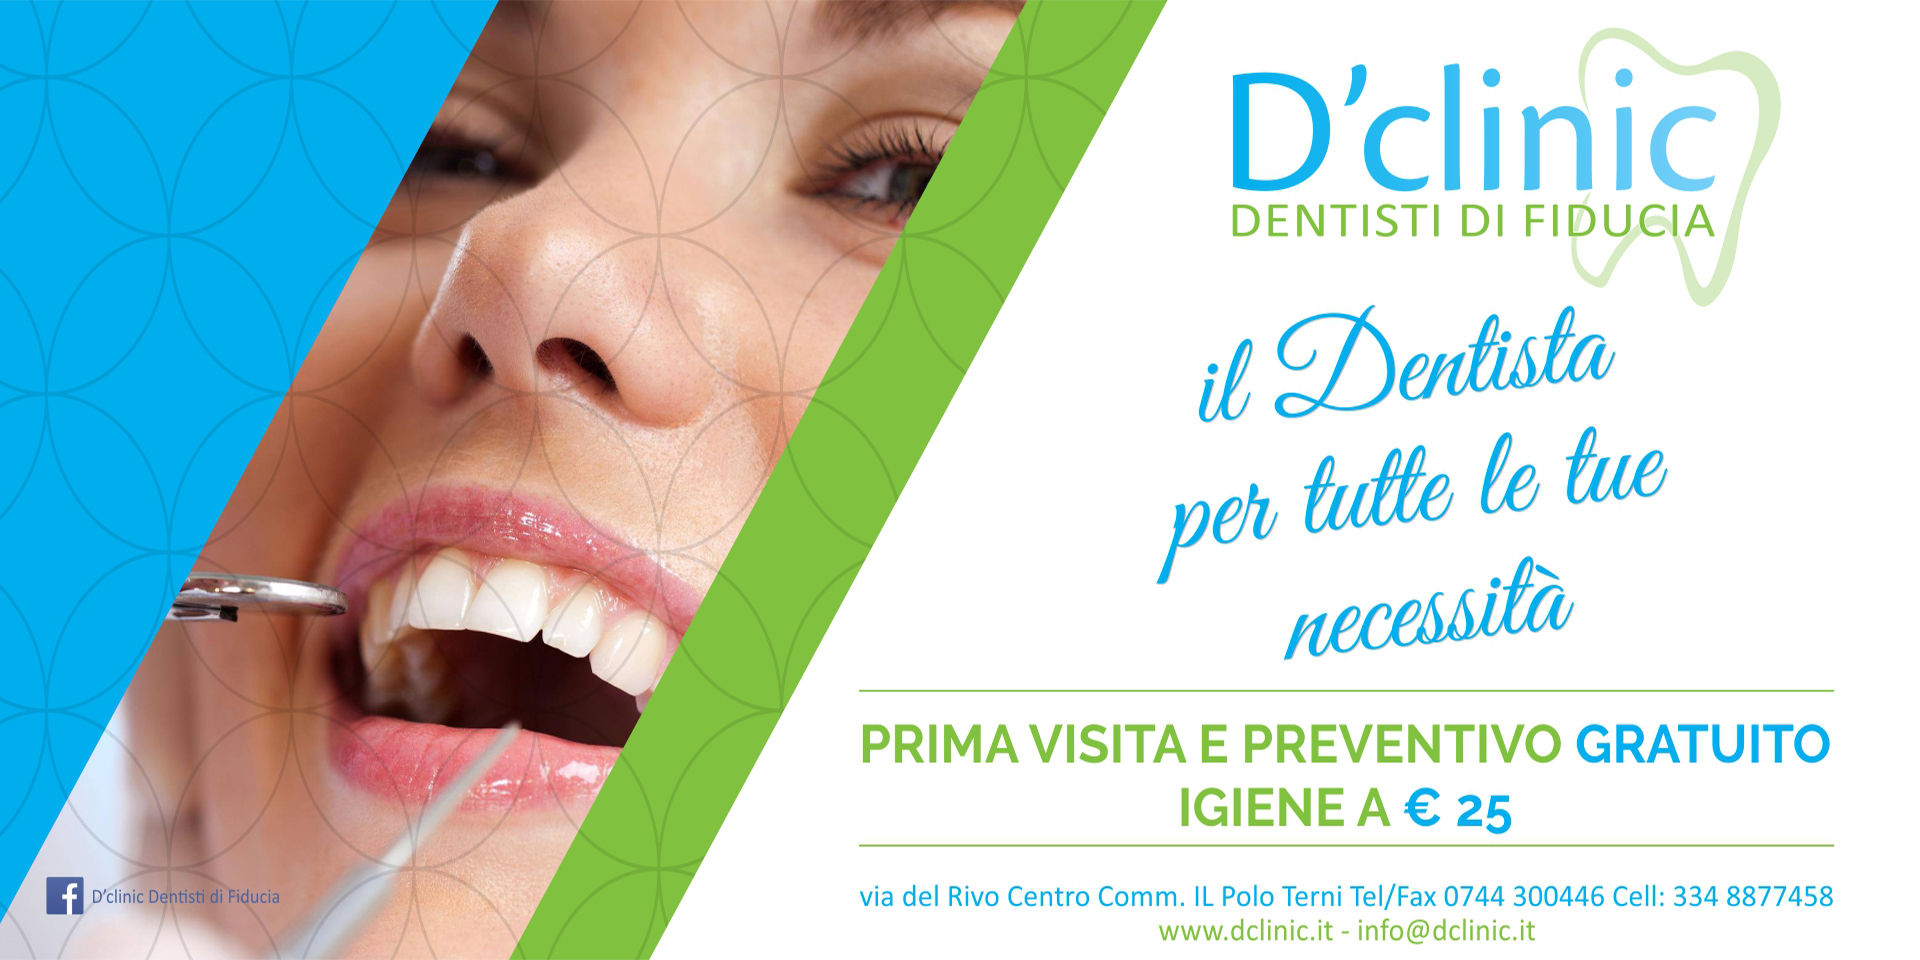 giornale-dclinic